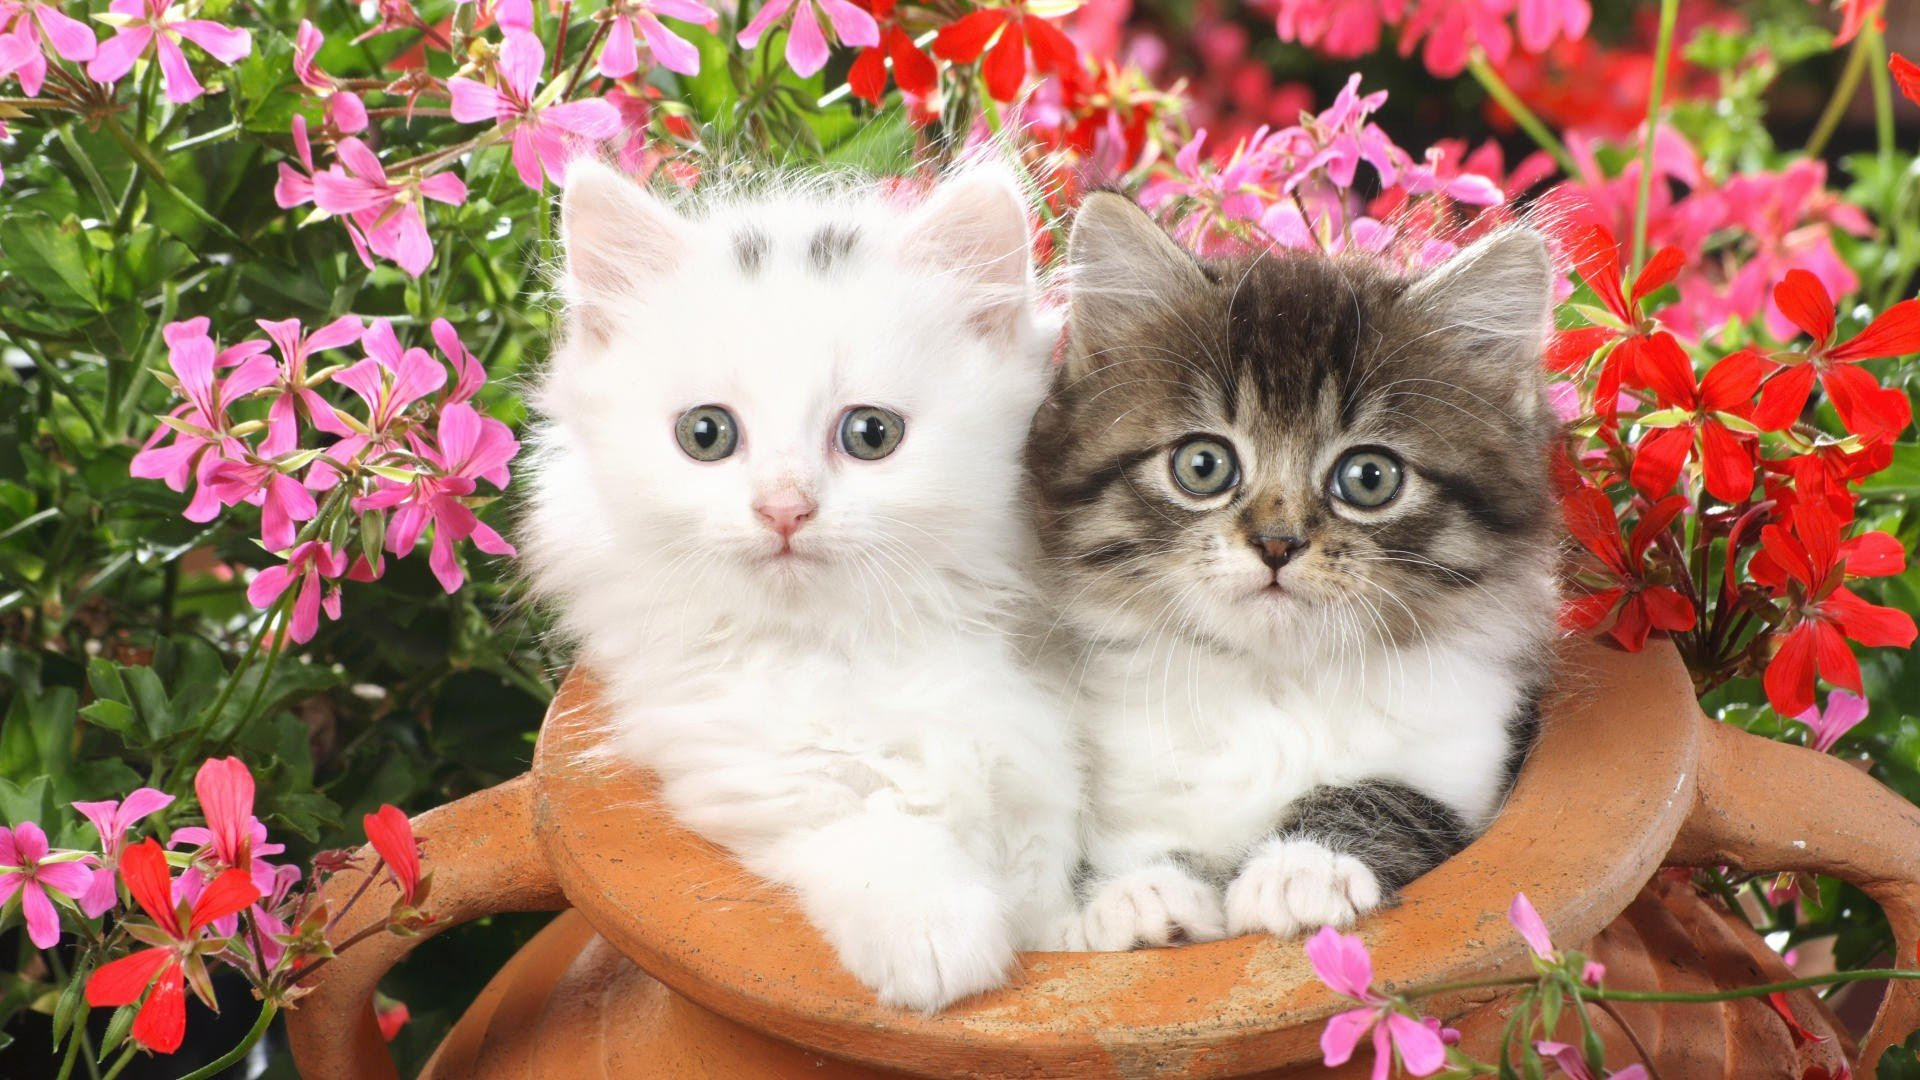 Cute Baby Cats And Flowers Wallpaper Wallpaperlepi